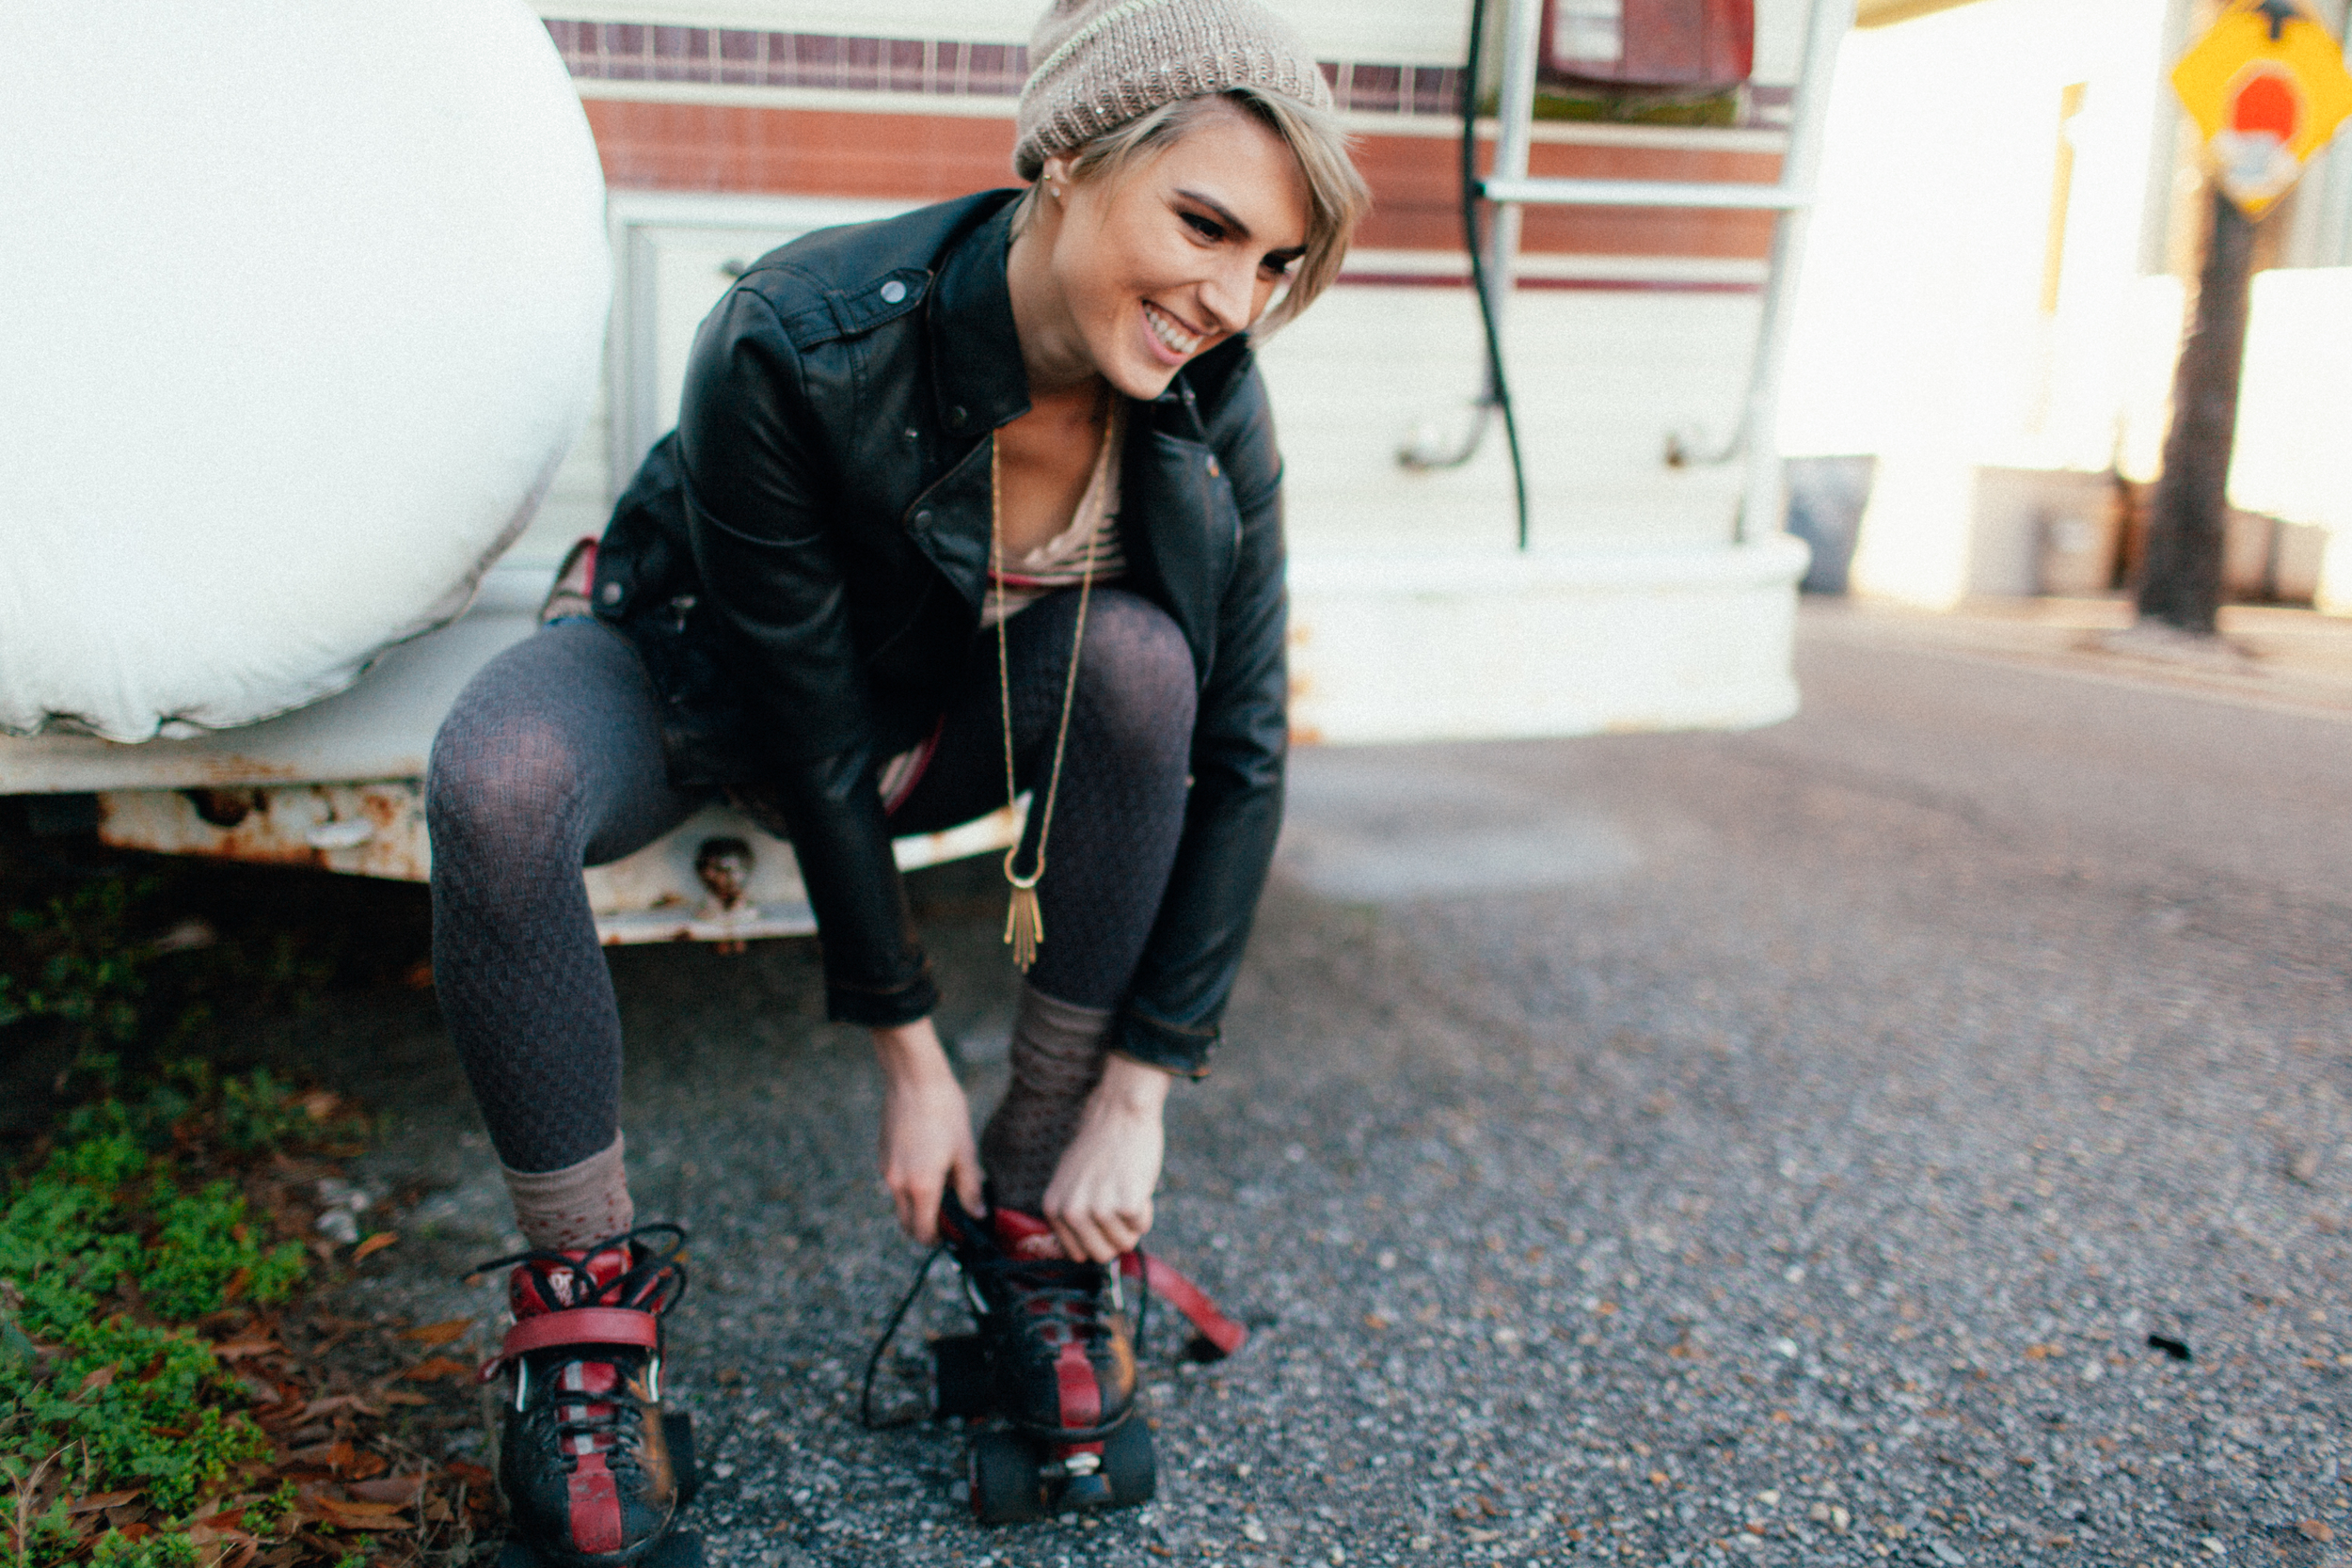 New Orleans Roller Skates Lifestyle Photography The Finches